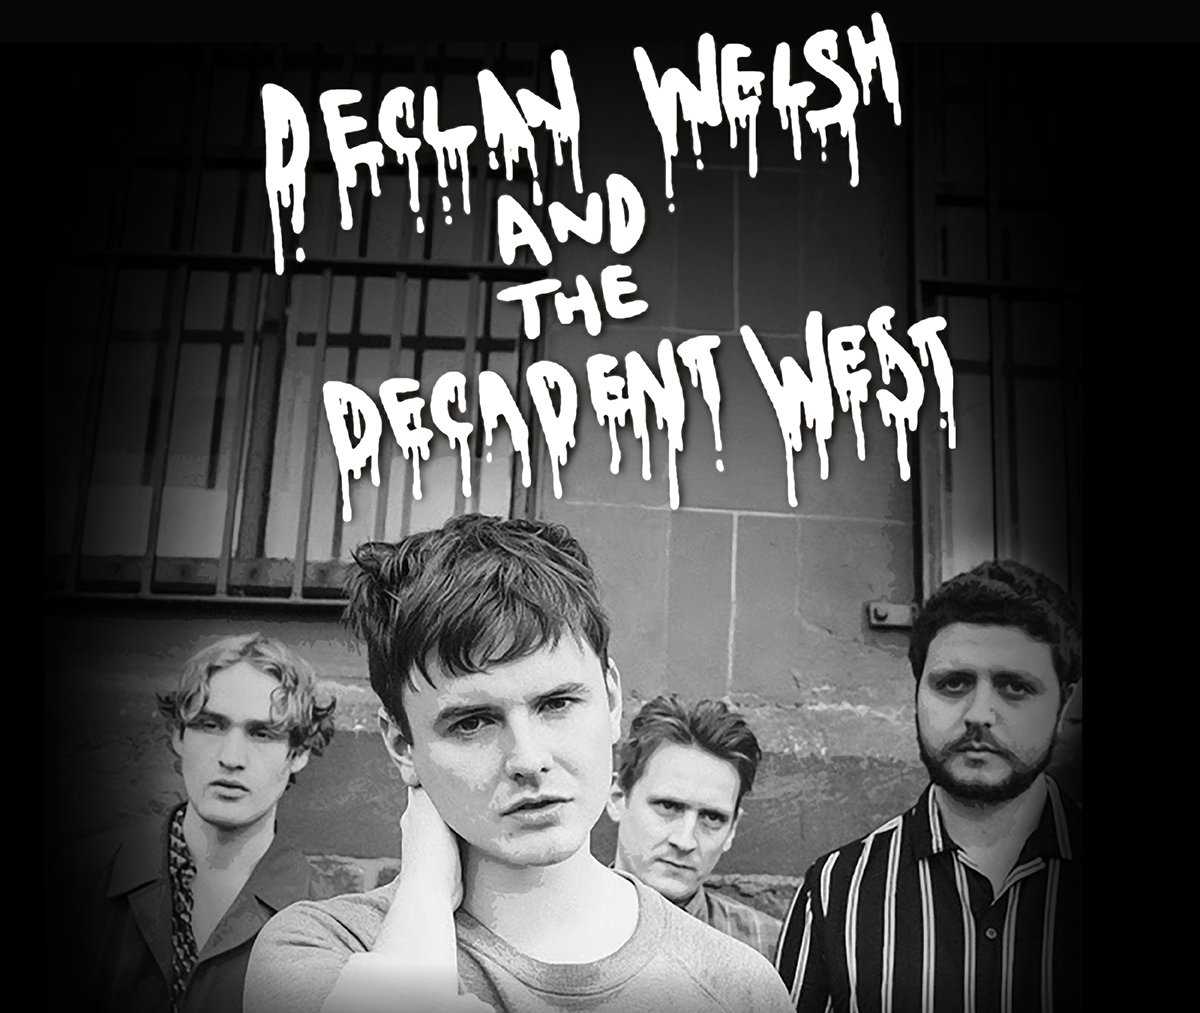 Declan Welsh & The Decadent West – How Does Your Love